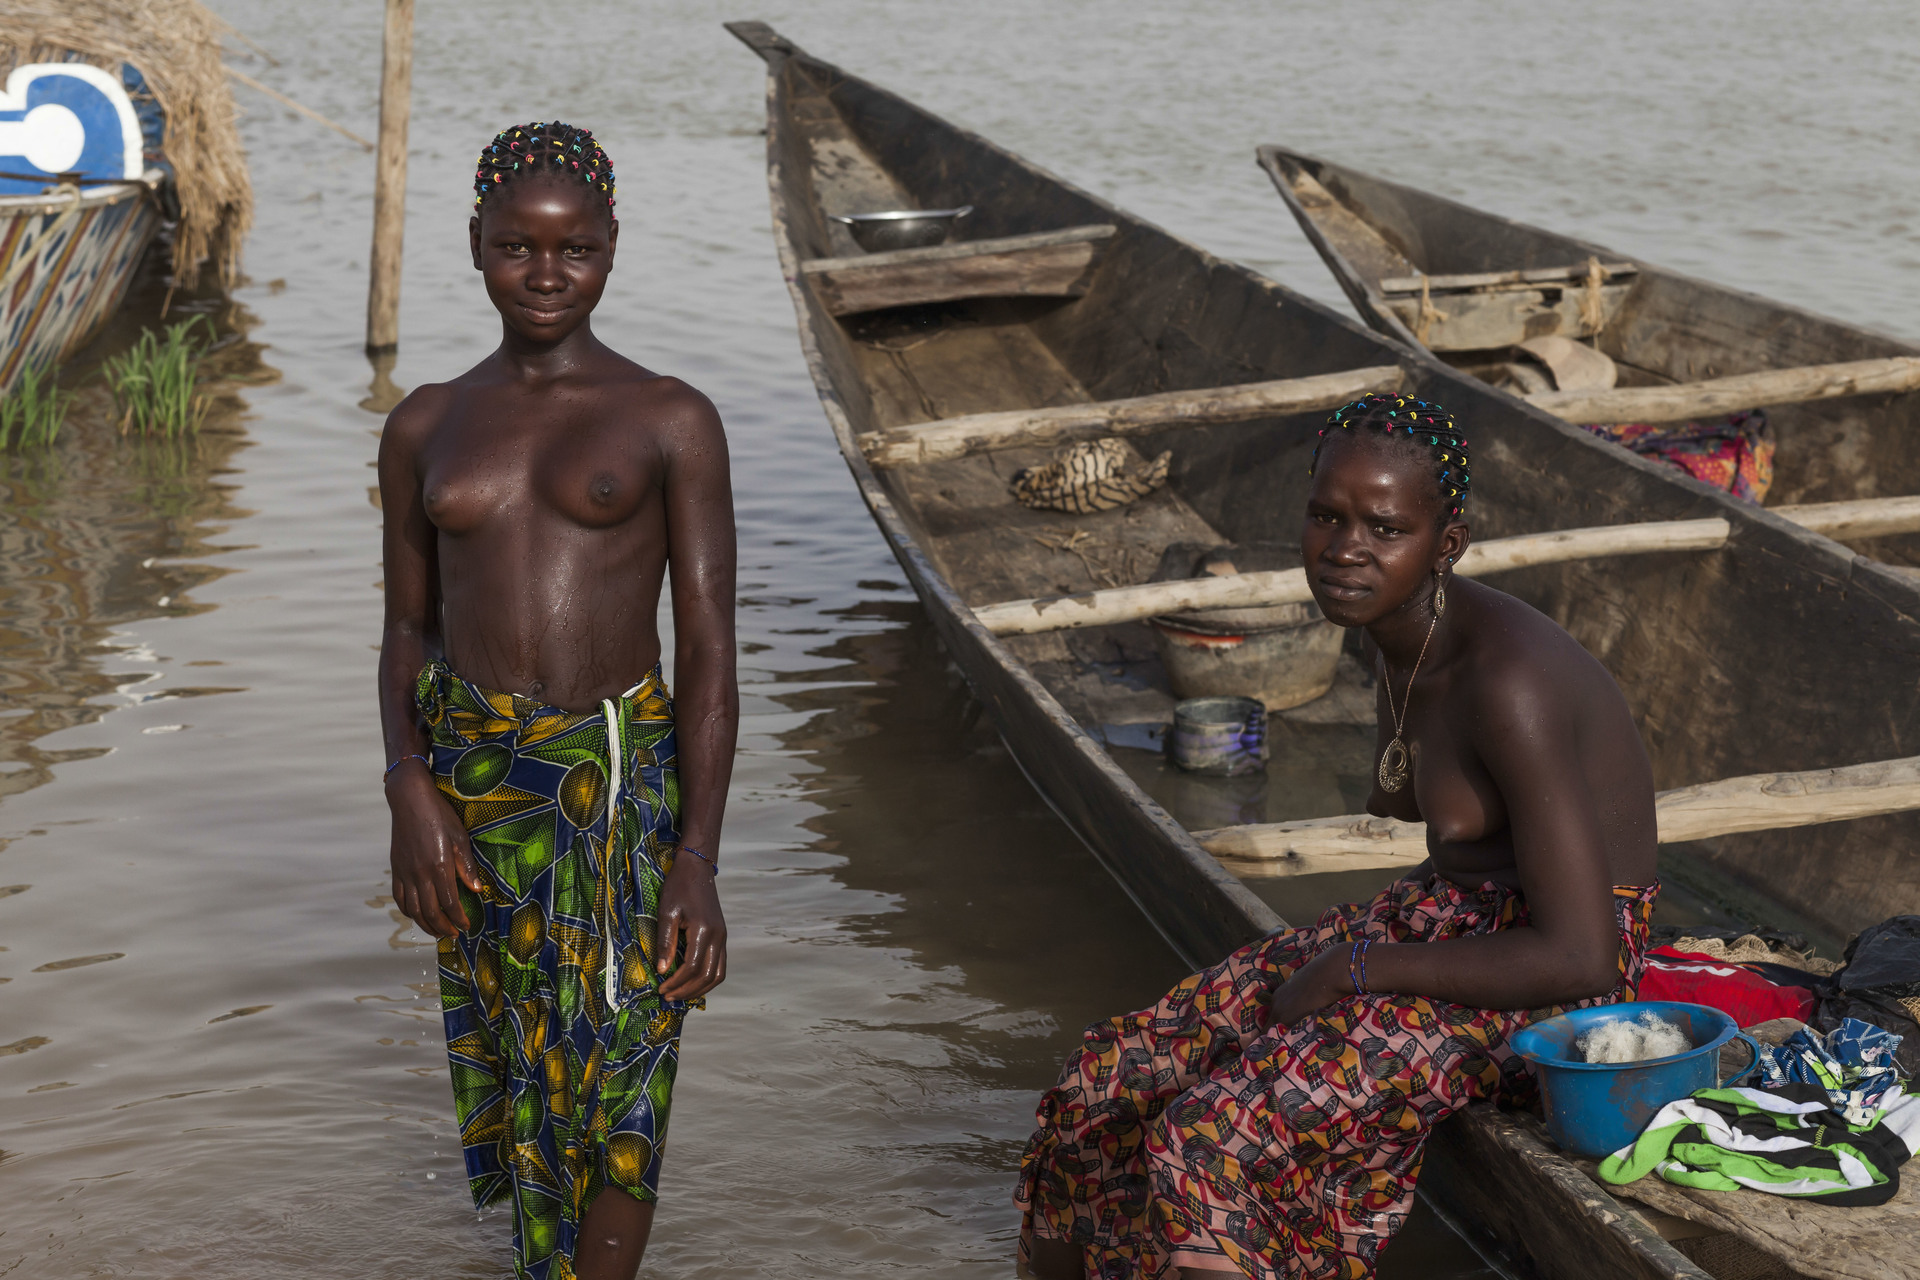 African girls naked in river #6